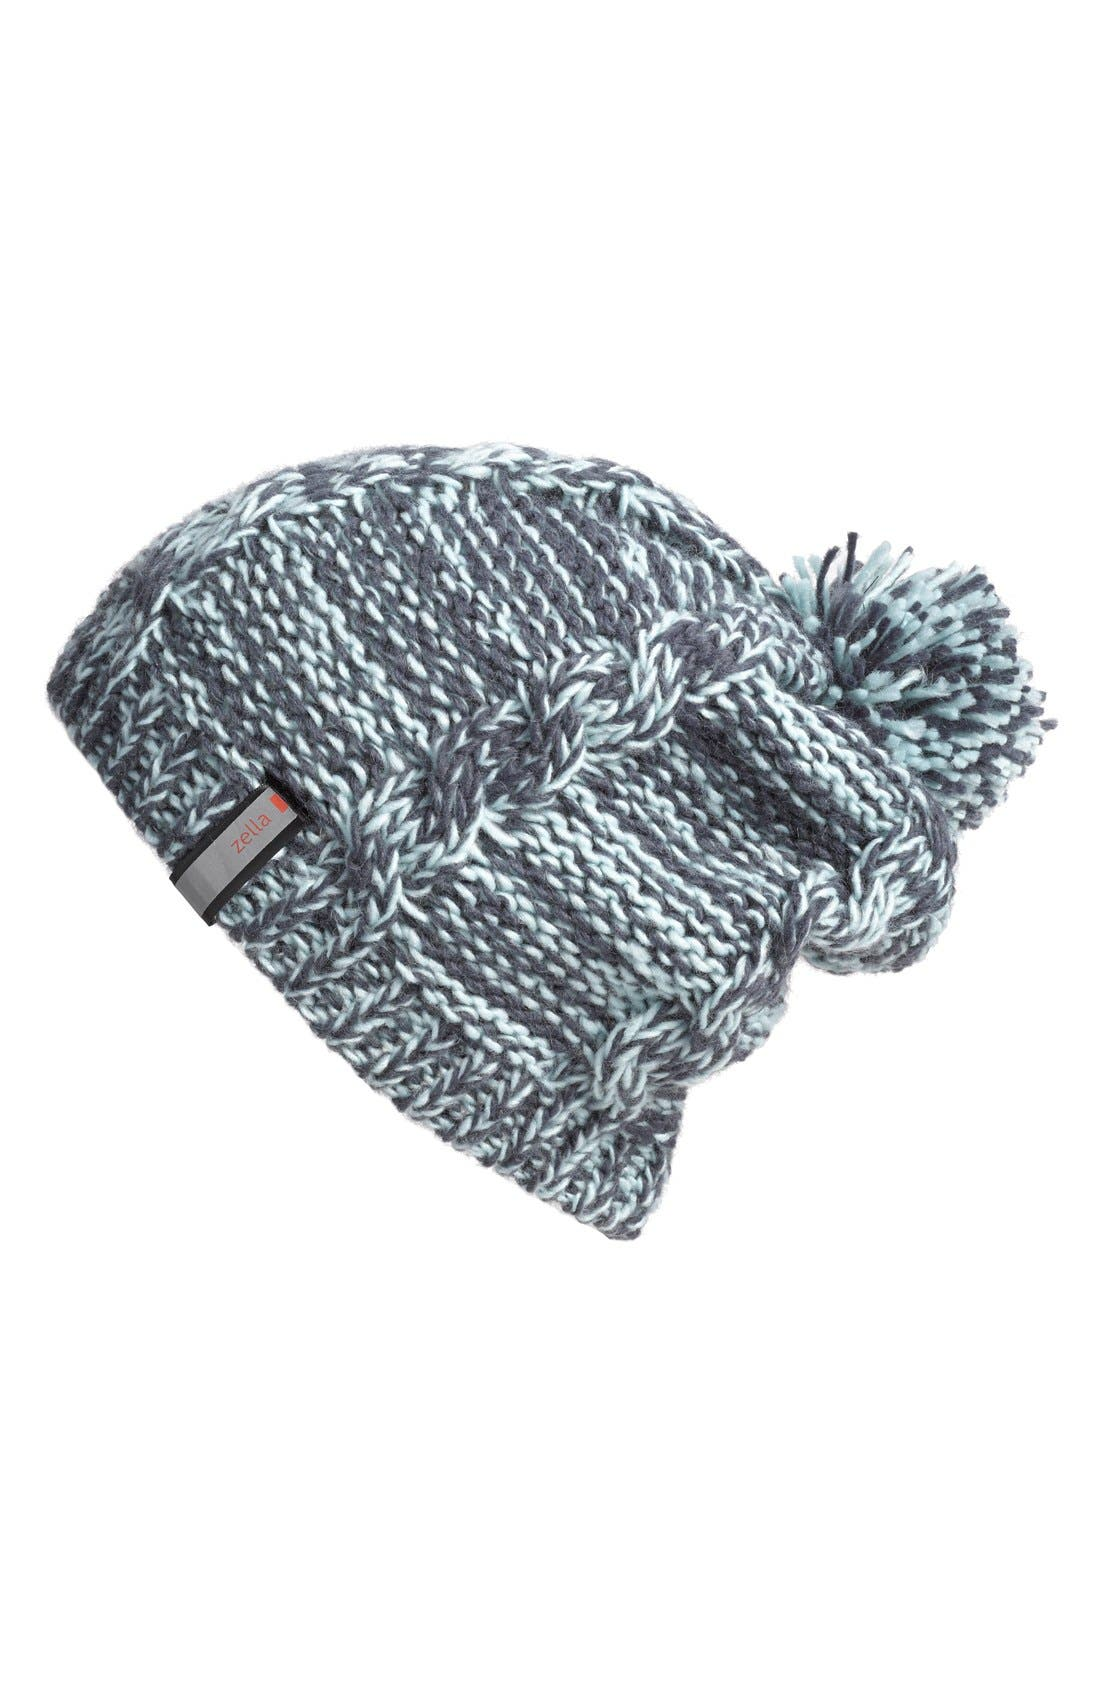 Alternate Image 1 Selected - Zella Chunky Knit Beanie